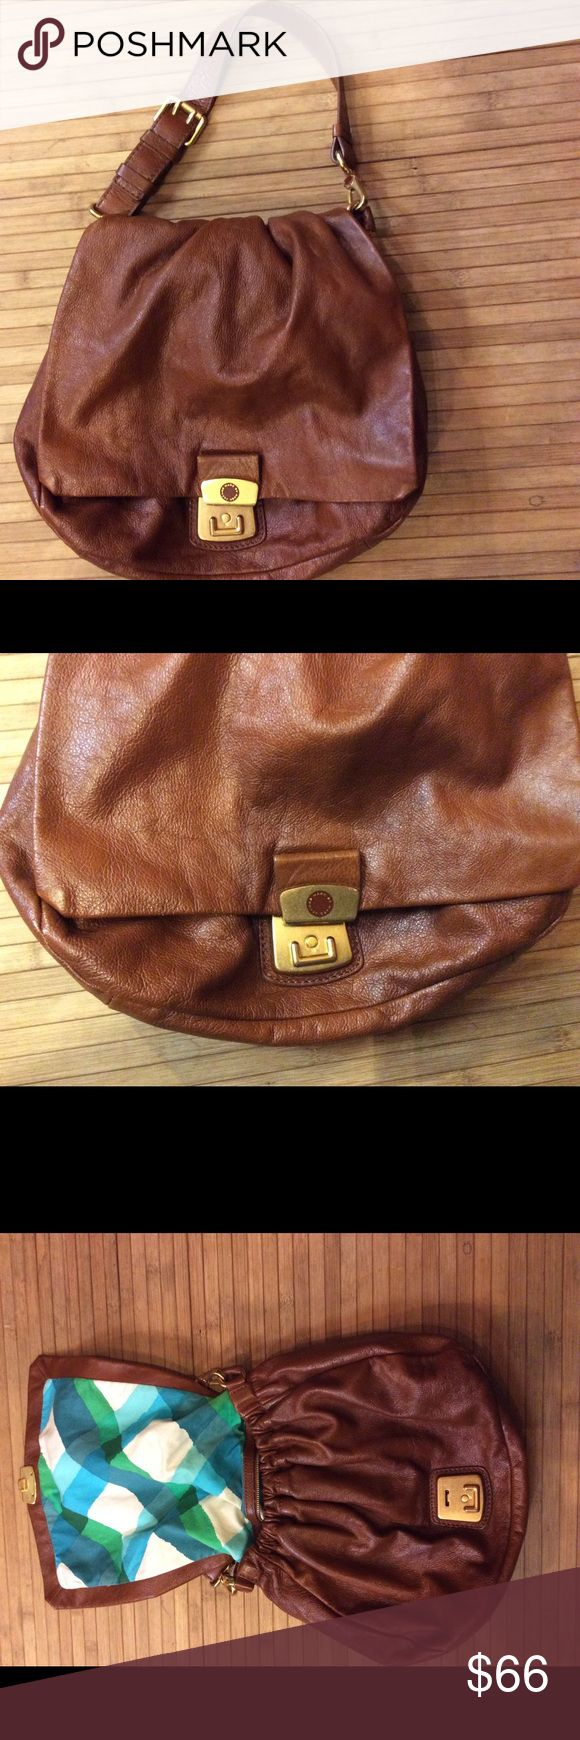 Marc Jacobs leather bag Good used condition with minimal signs of wear! Authentic and all leather. This is a medium sized bag Marc by Marc Jacobs Bags Satchels